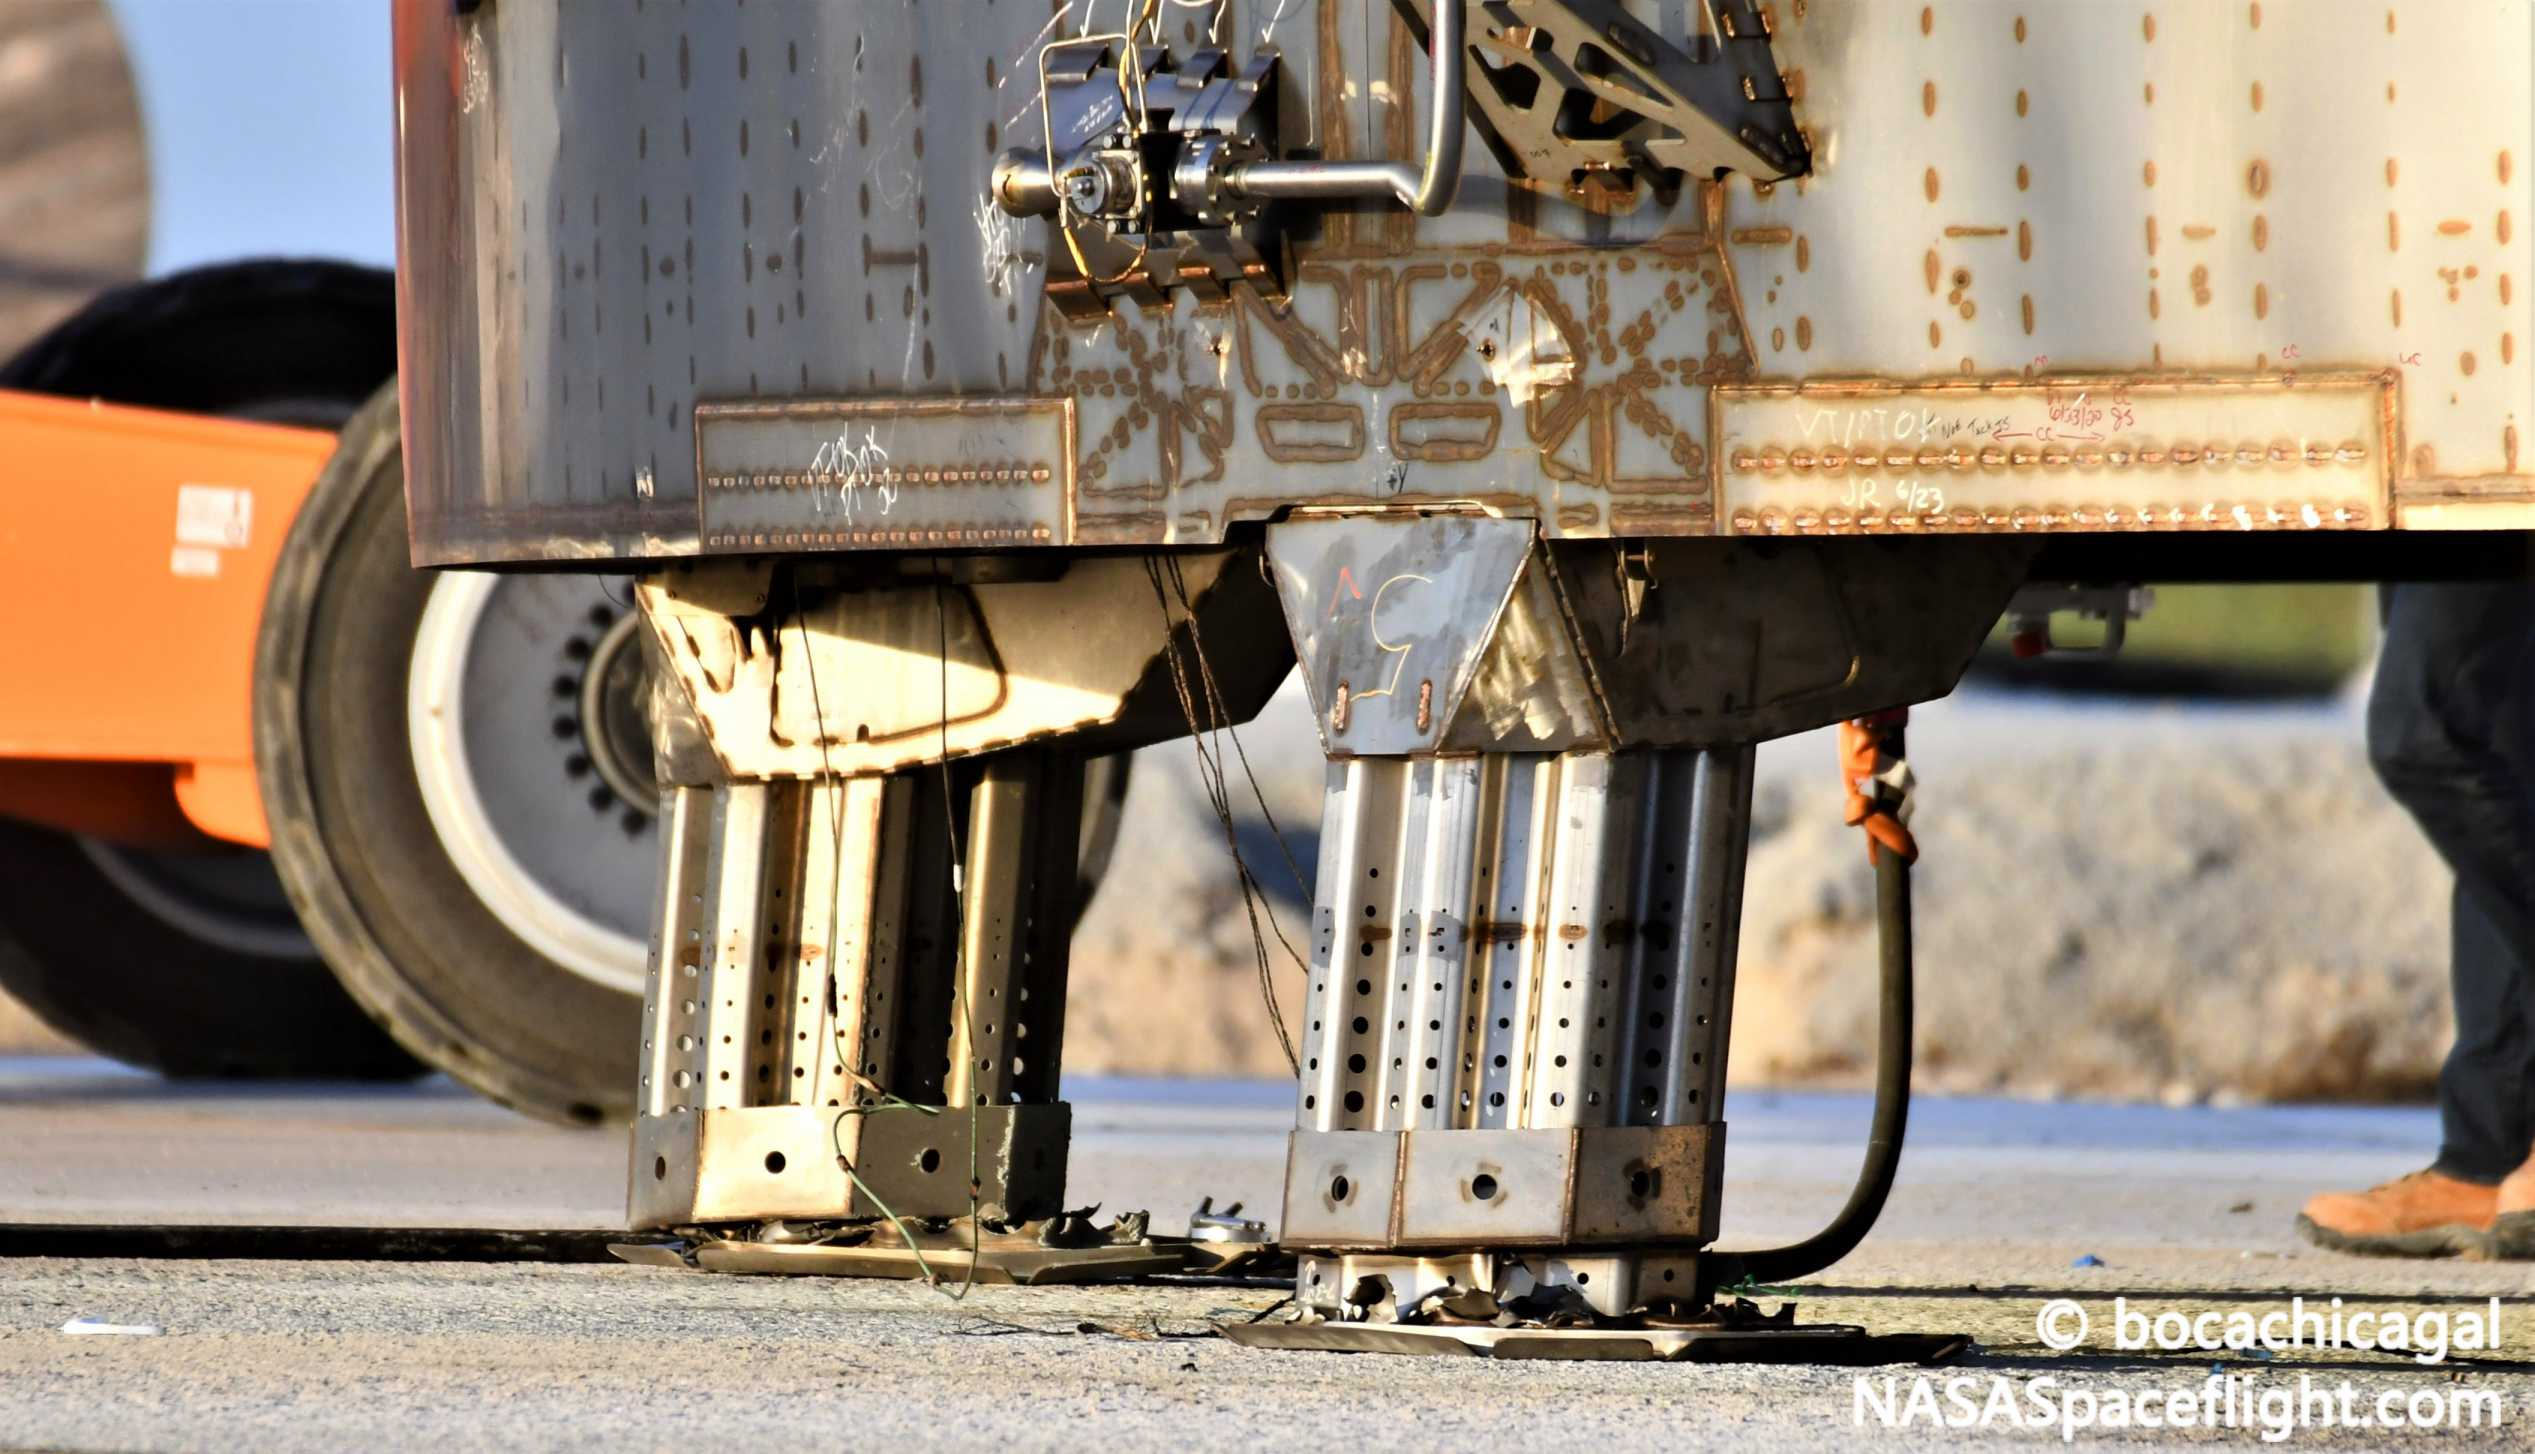 Starship Boca Chica 080720 (NASASpaceflight – bocachicagal) SN5 leg work 2 crop (c)